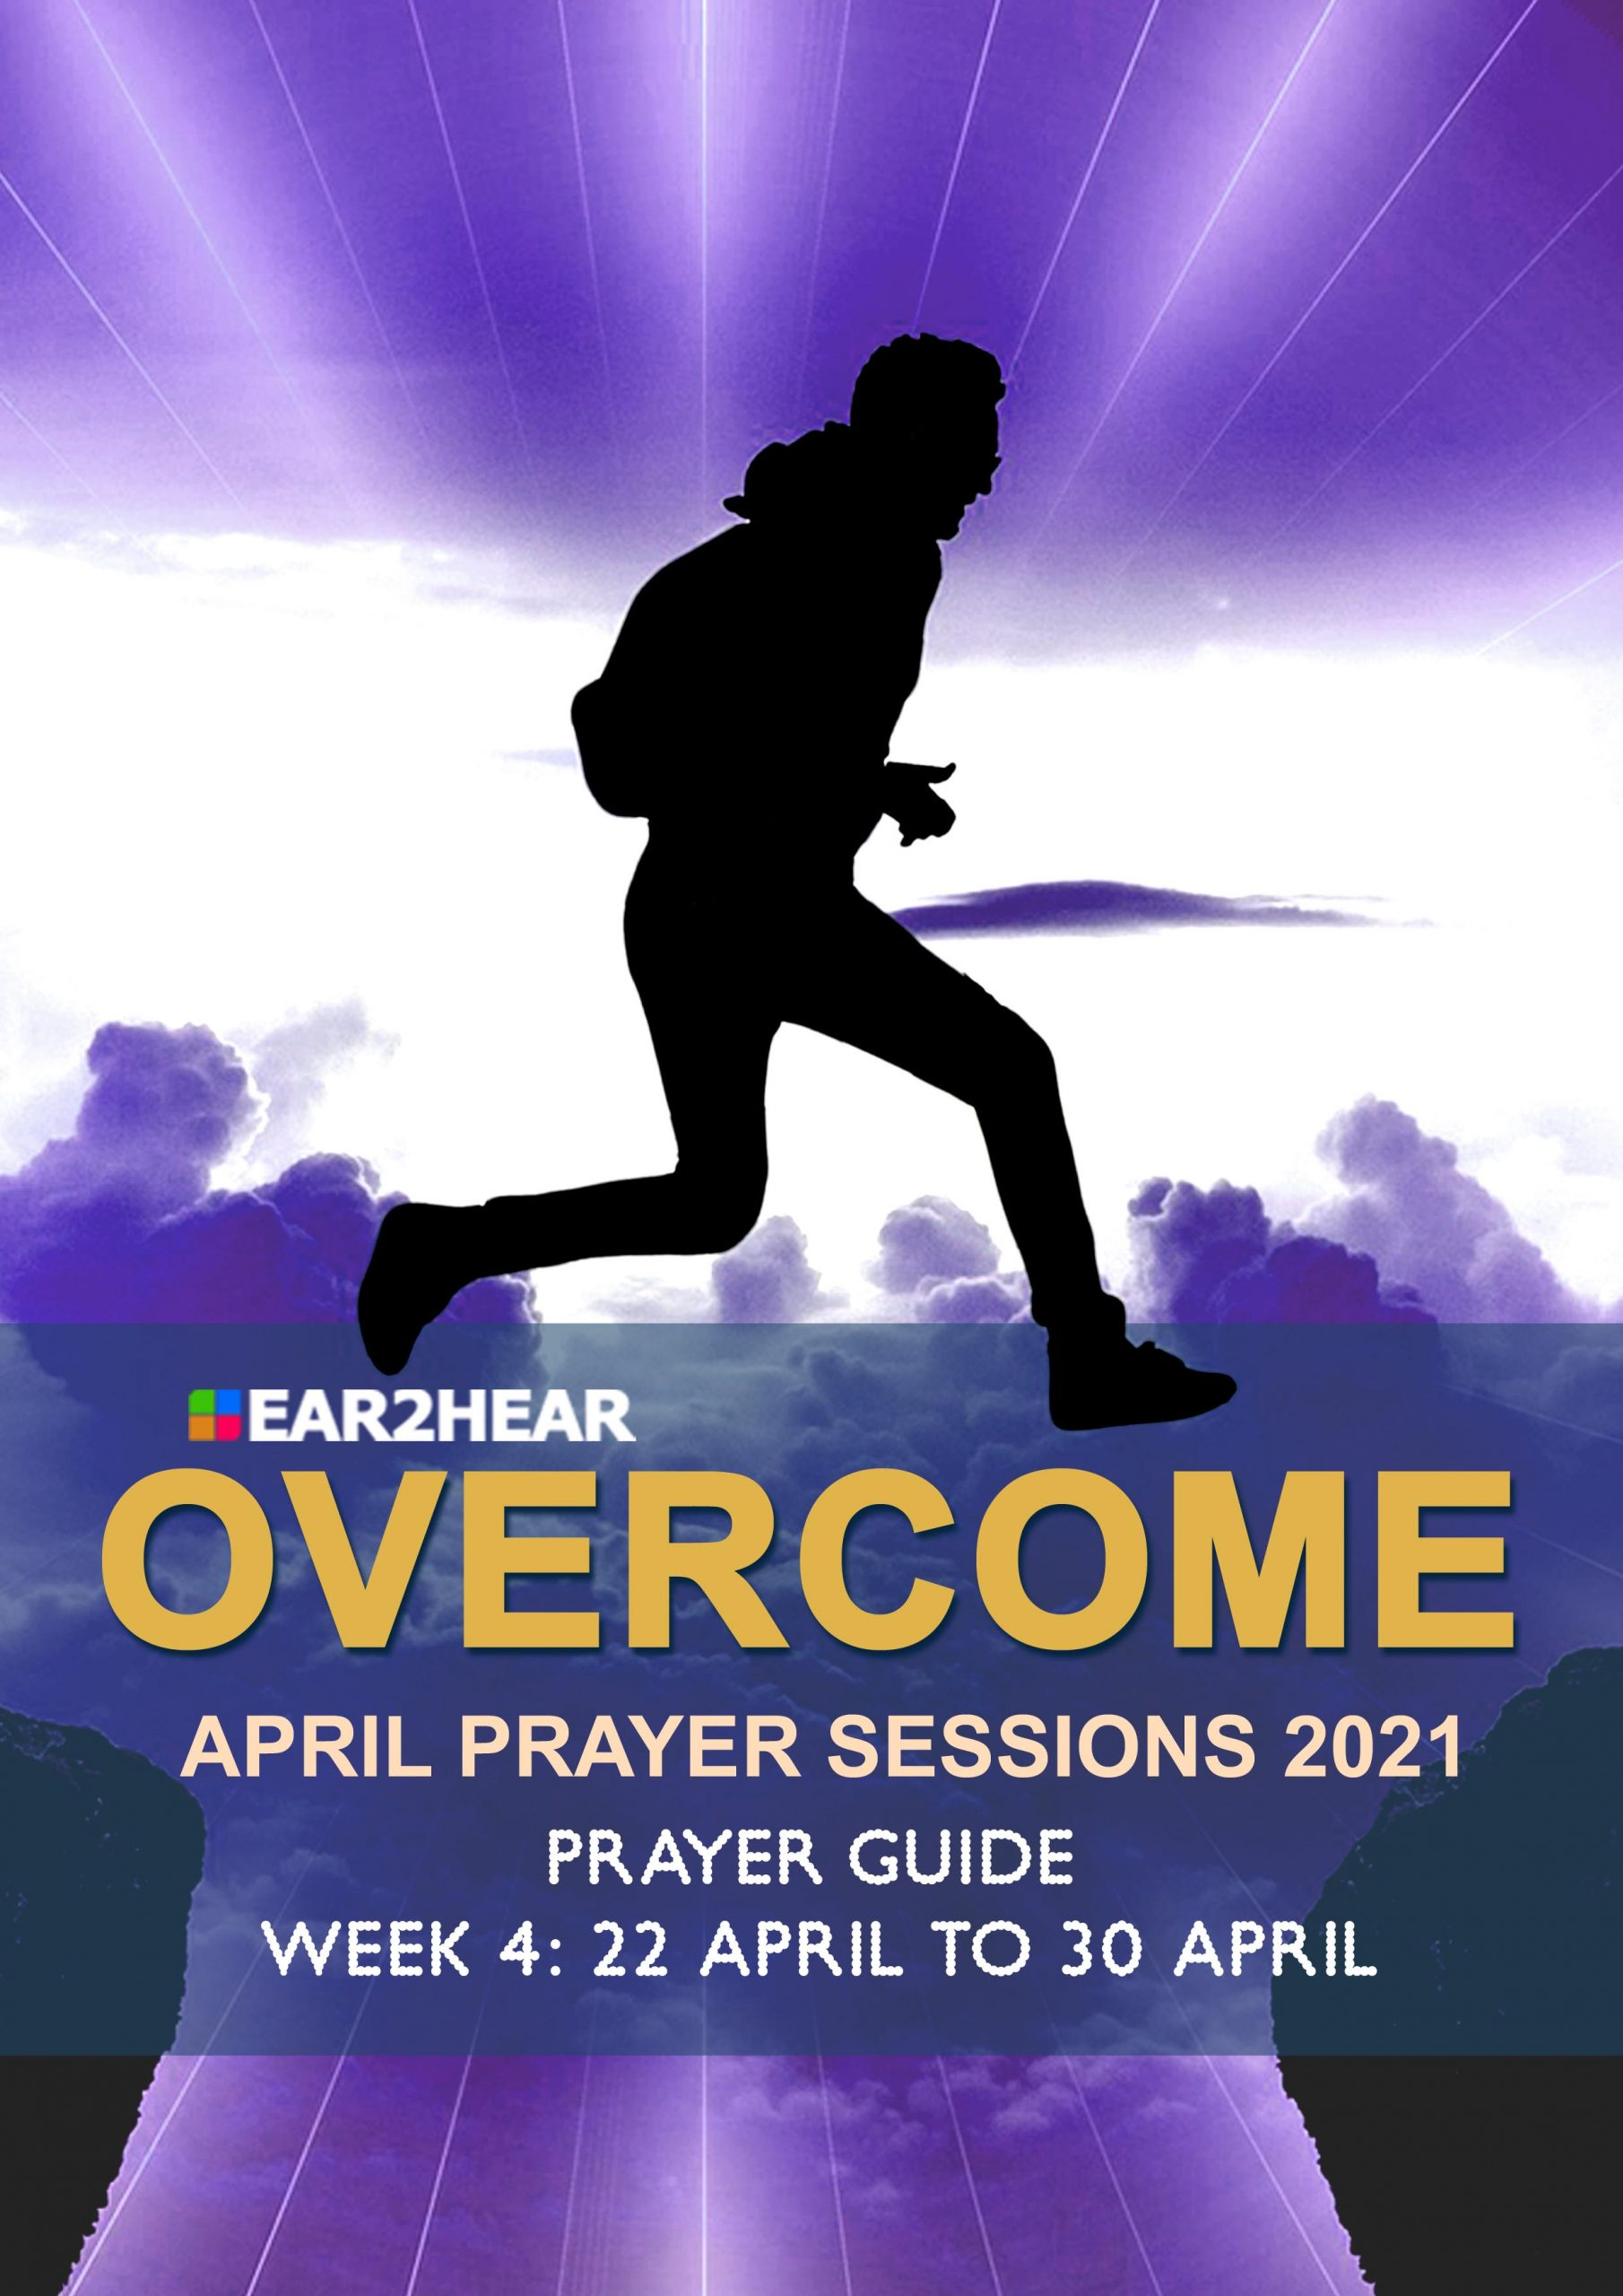 Click / press on image to download week 3 of the prayer guide